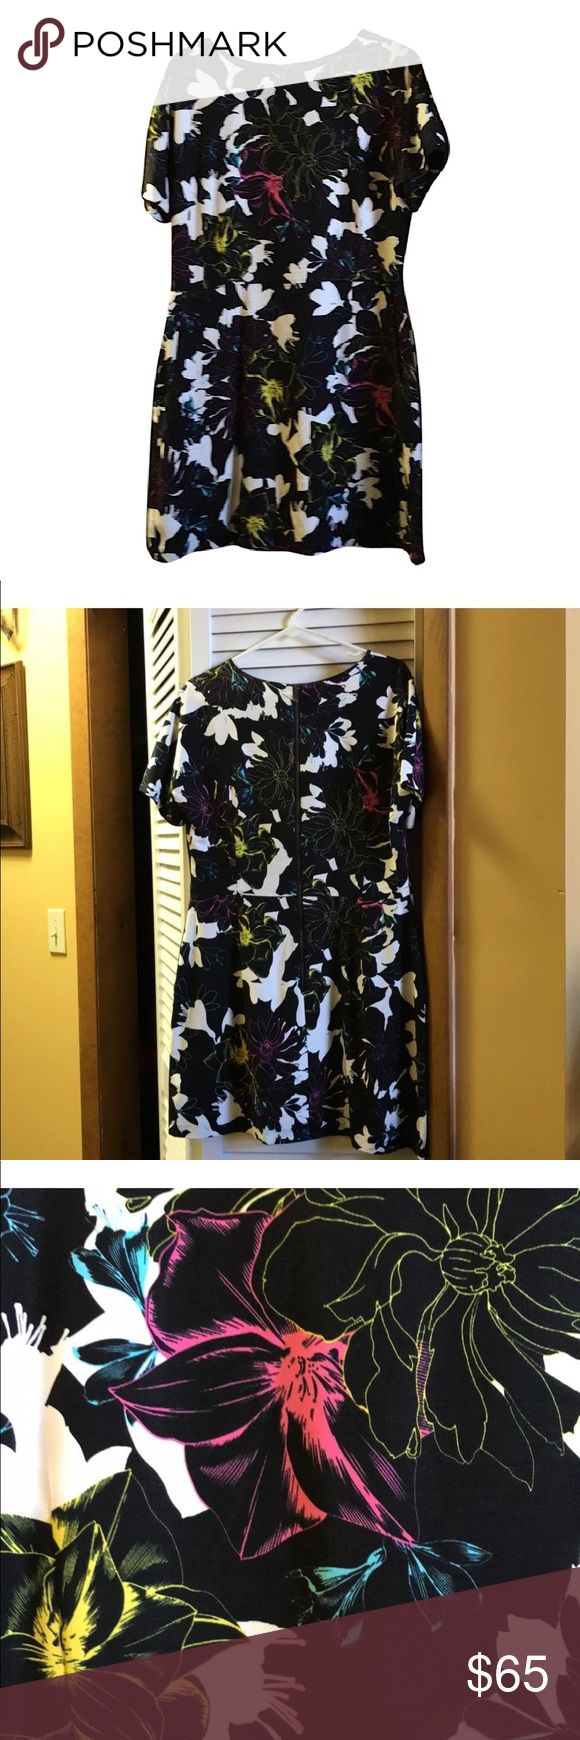 French Connection Short Sleeve Dress Cute dress with pockets and a colorful floral pattern. Great condition. Some wrinkles from storage, but nothing that can't be remedied easily. French Connection Dresses Mini